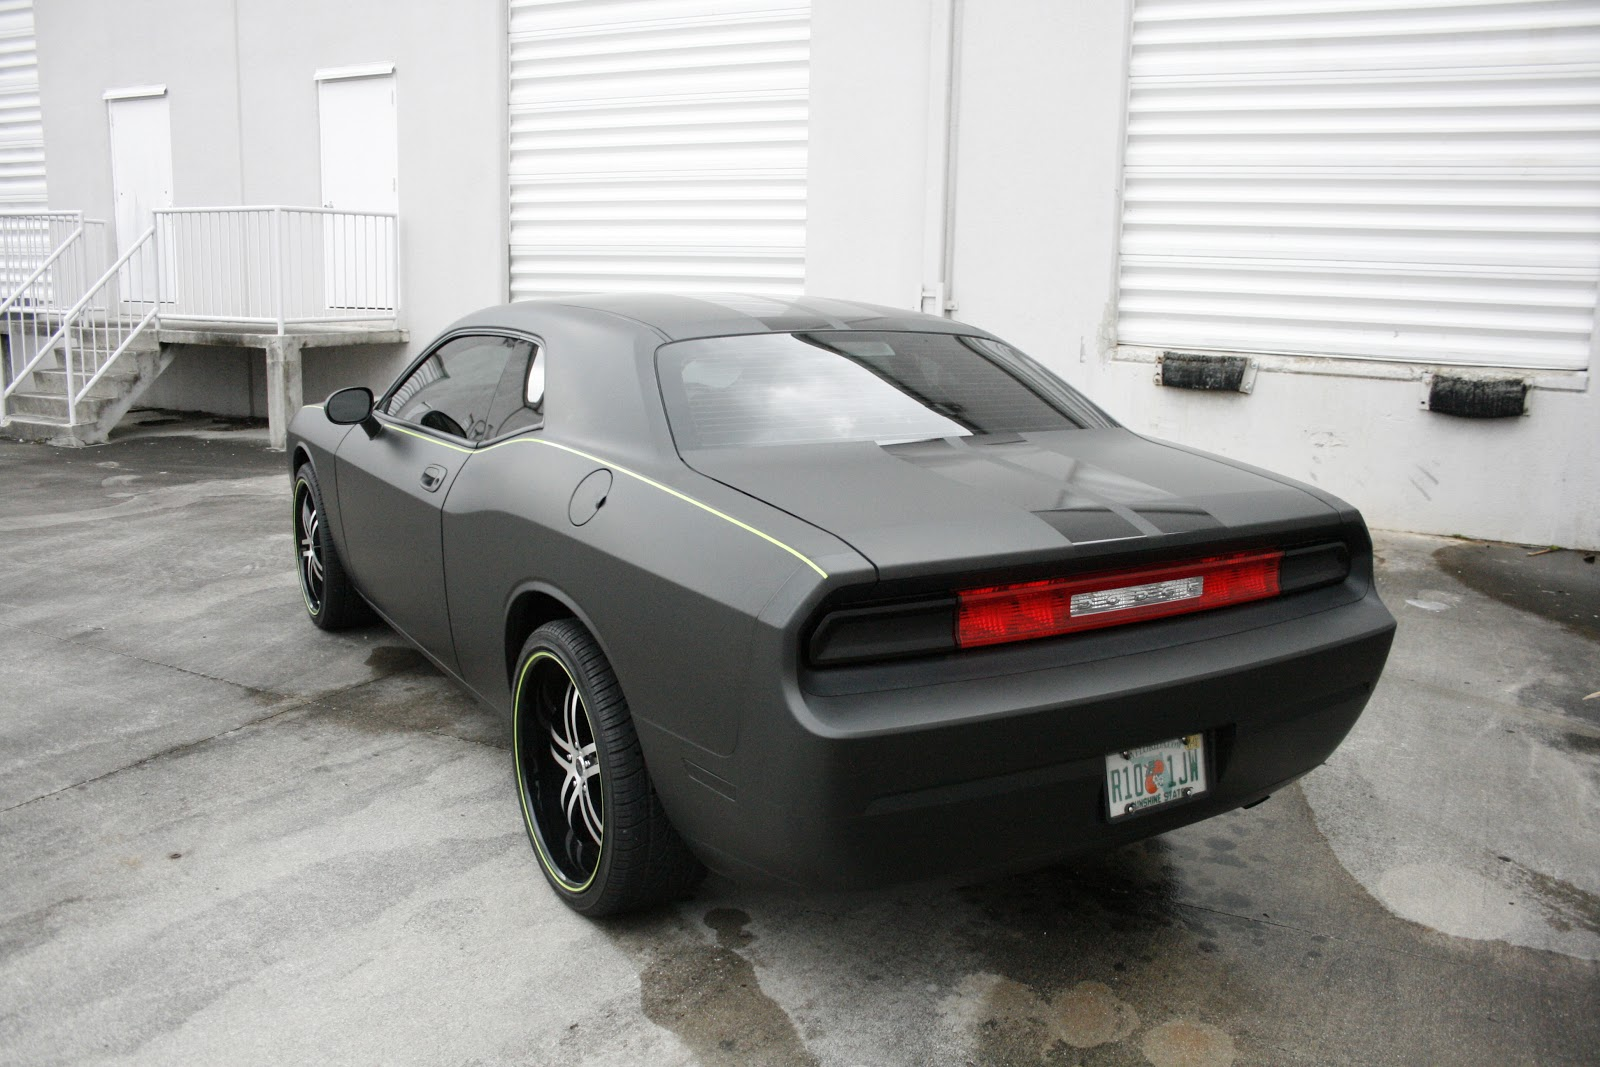 Dodge Challenger Fort Lauderdale Matte Black Car Wrap Car Wrap